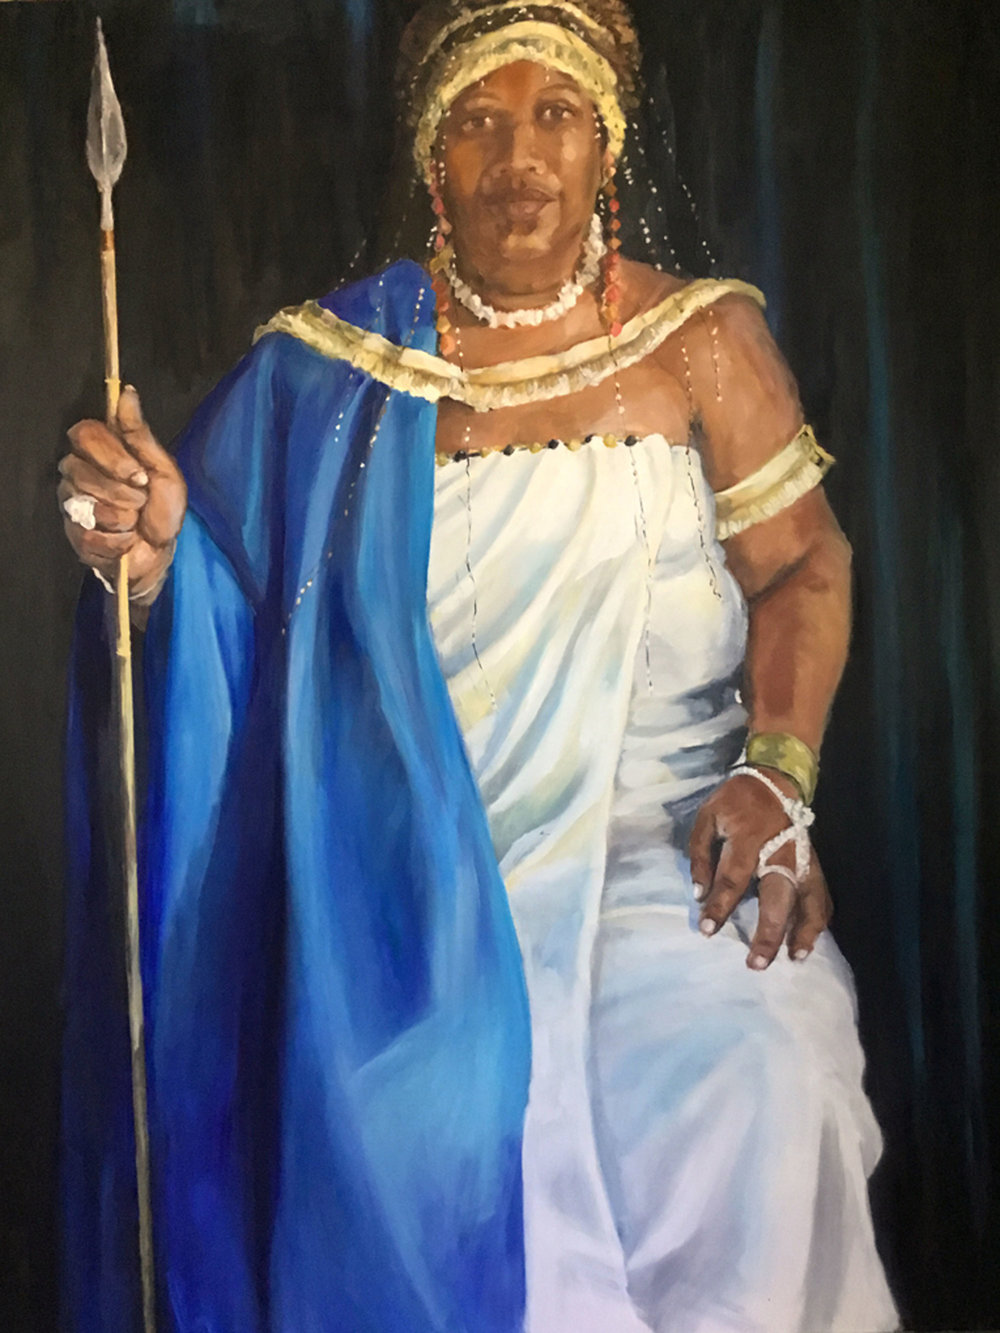 """Cynthia as Queen of Ethopia"" by Sandra Charles, Oil on canvas, 48x60in 2016, NFS"